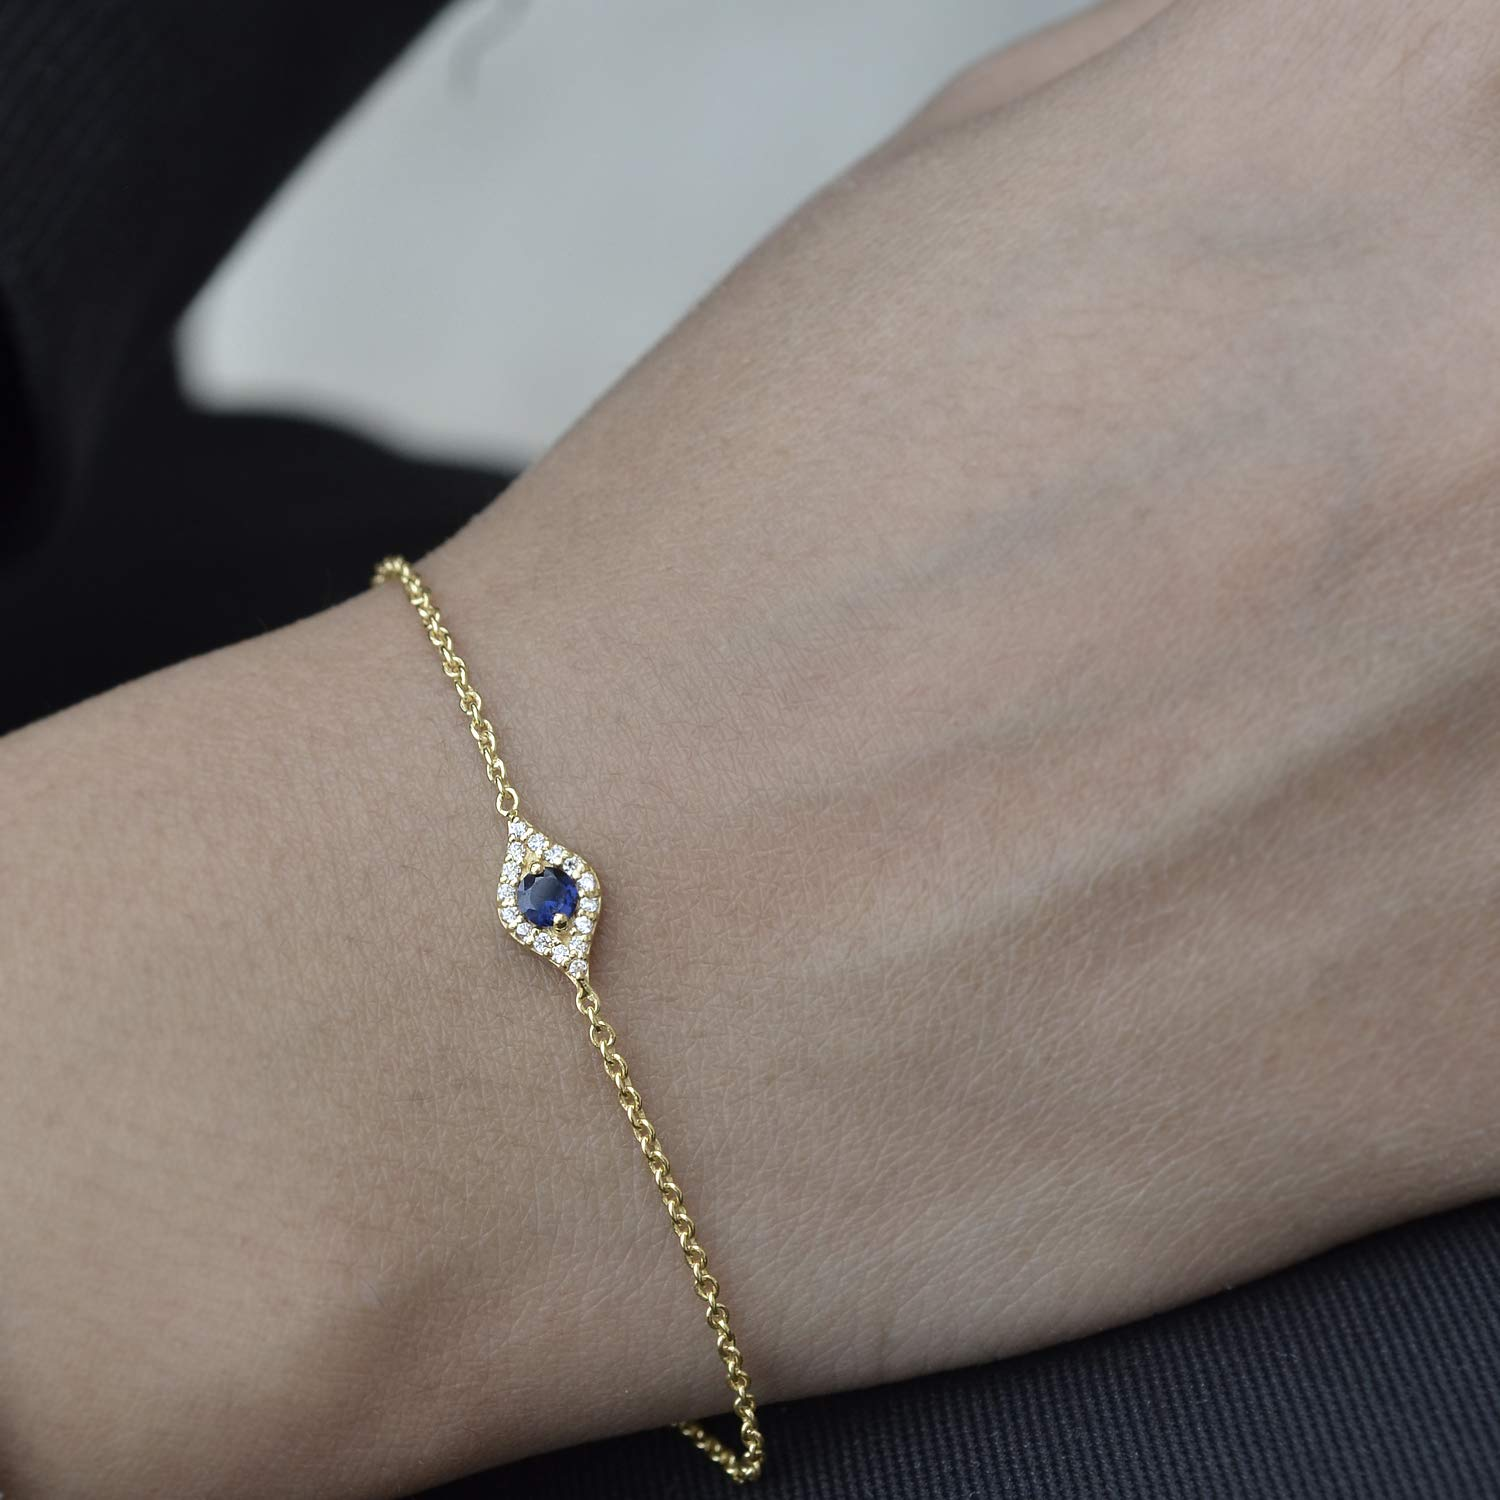 Genuine Blue Sapphire Gemstone /& SI Clarity G-H Color Diamond Stackable Ring Solid 14K Yellow Gold Handmade September Birthstone Jewelry